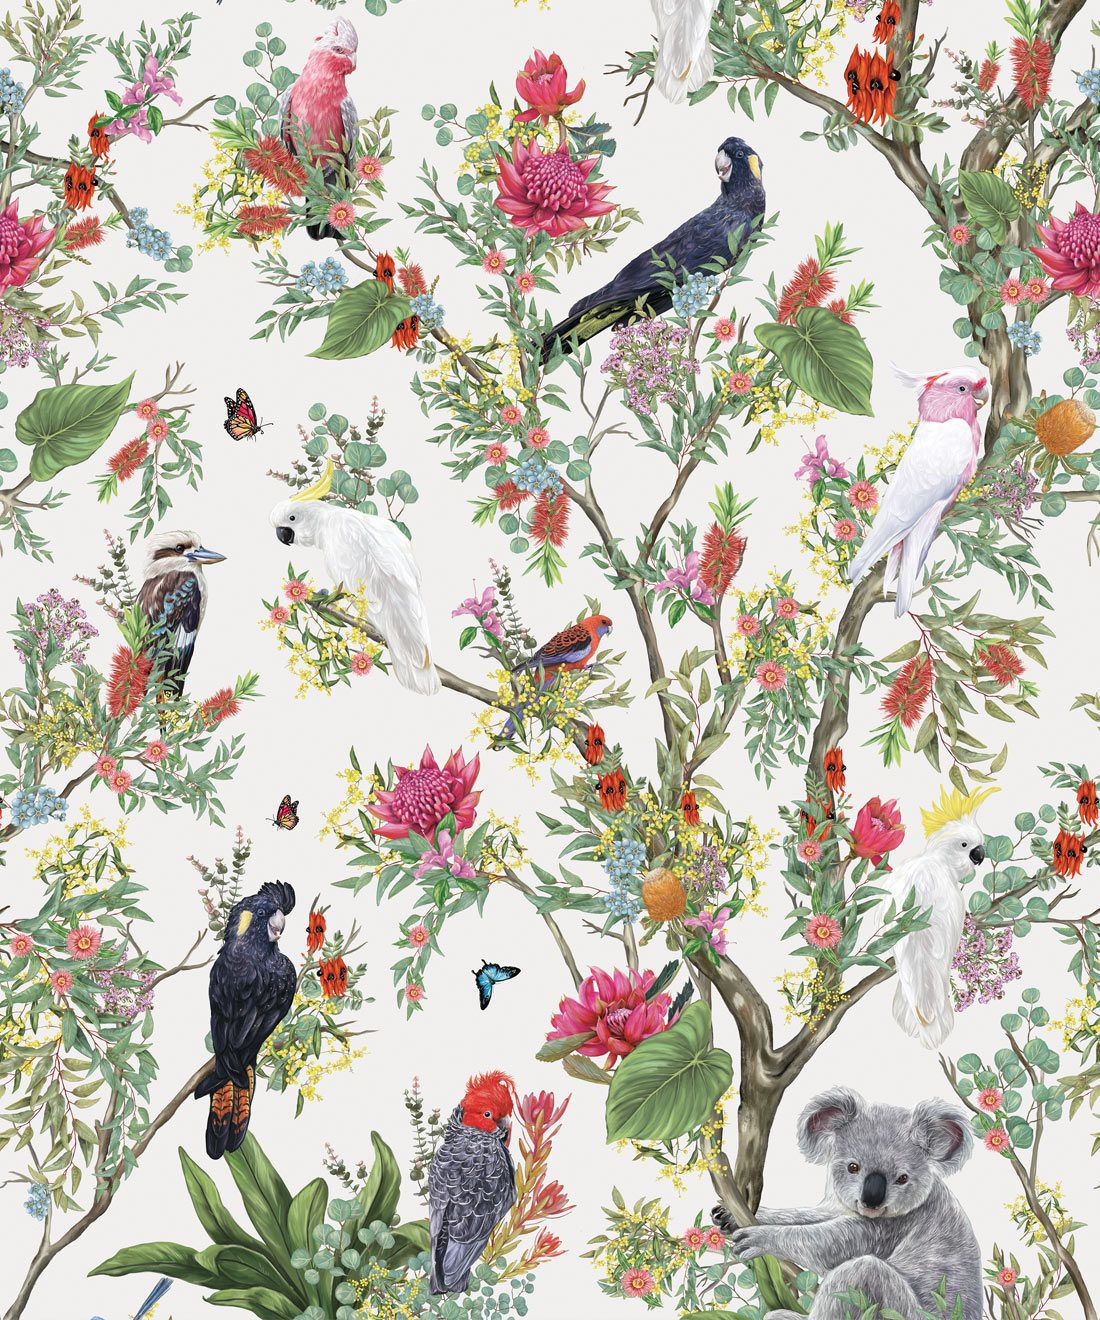 Australia Wallpaper • Cockatoos, Koalas, Parrots, Finches • Milton & King Europe • Canvas Wallpaper Swatch